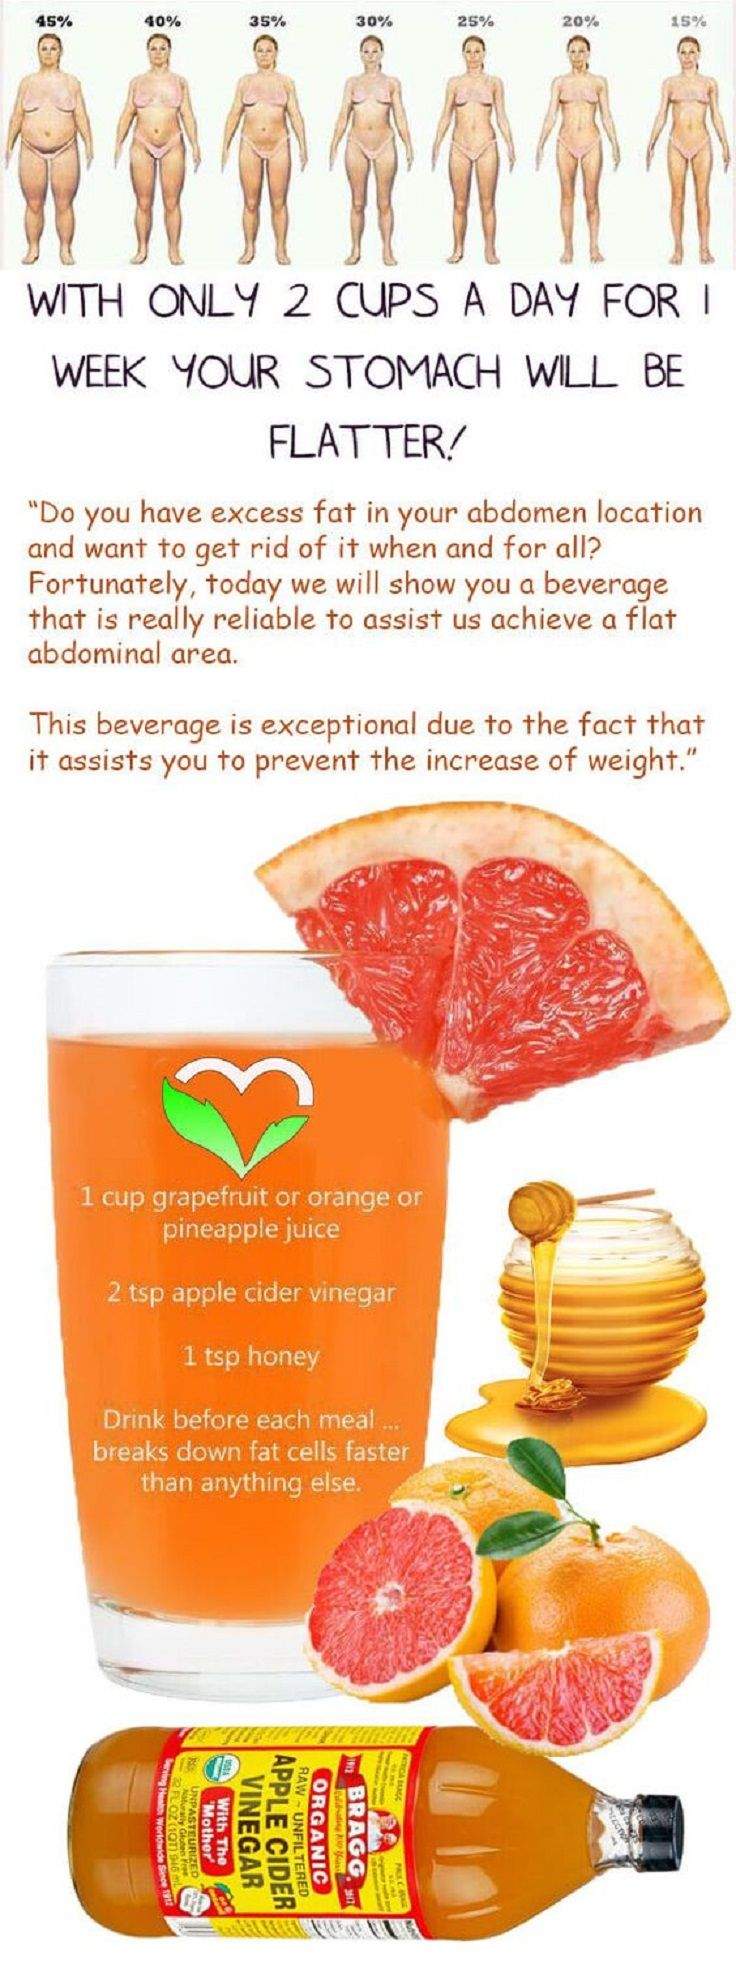 Simple Natural Remedy for Flat Stomach and Quick Weight Loss - 15 Intensive Natural Remedies for Weight Loss, Cellulite and Wrinkles